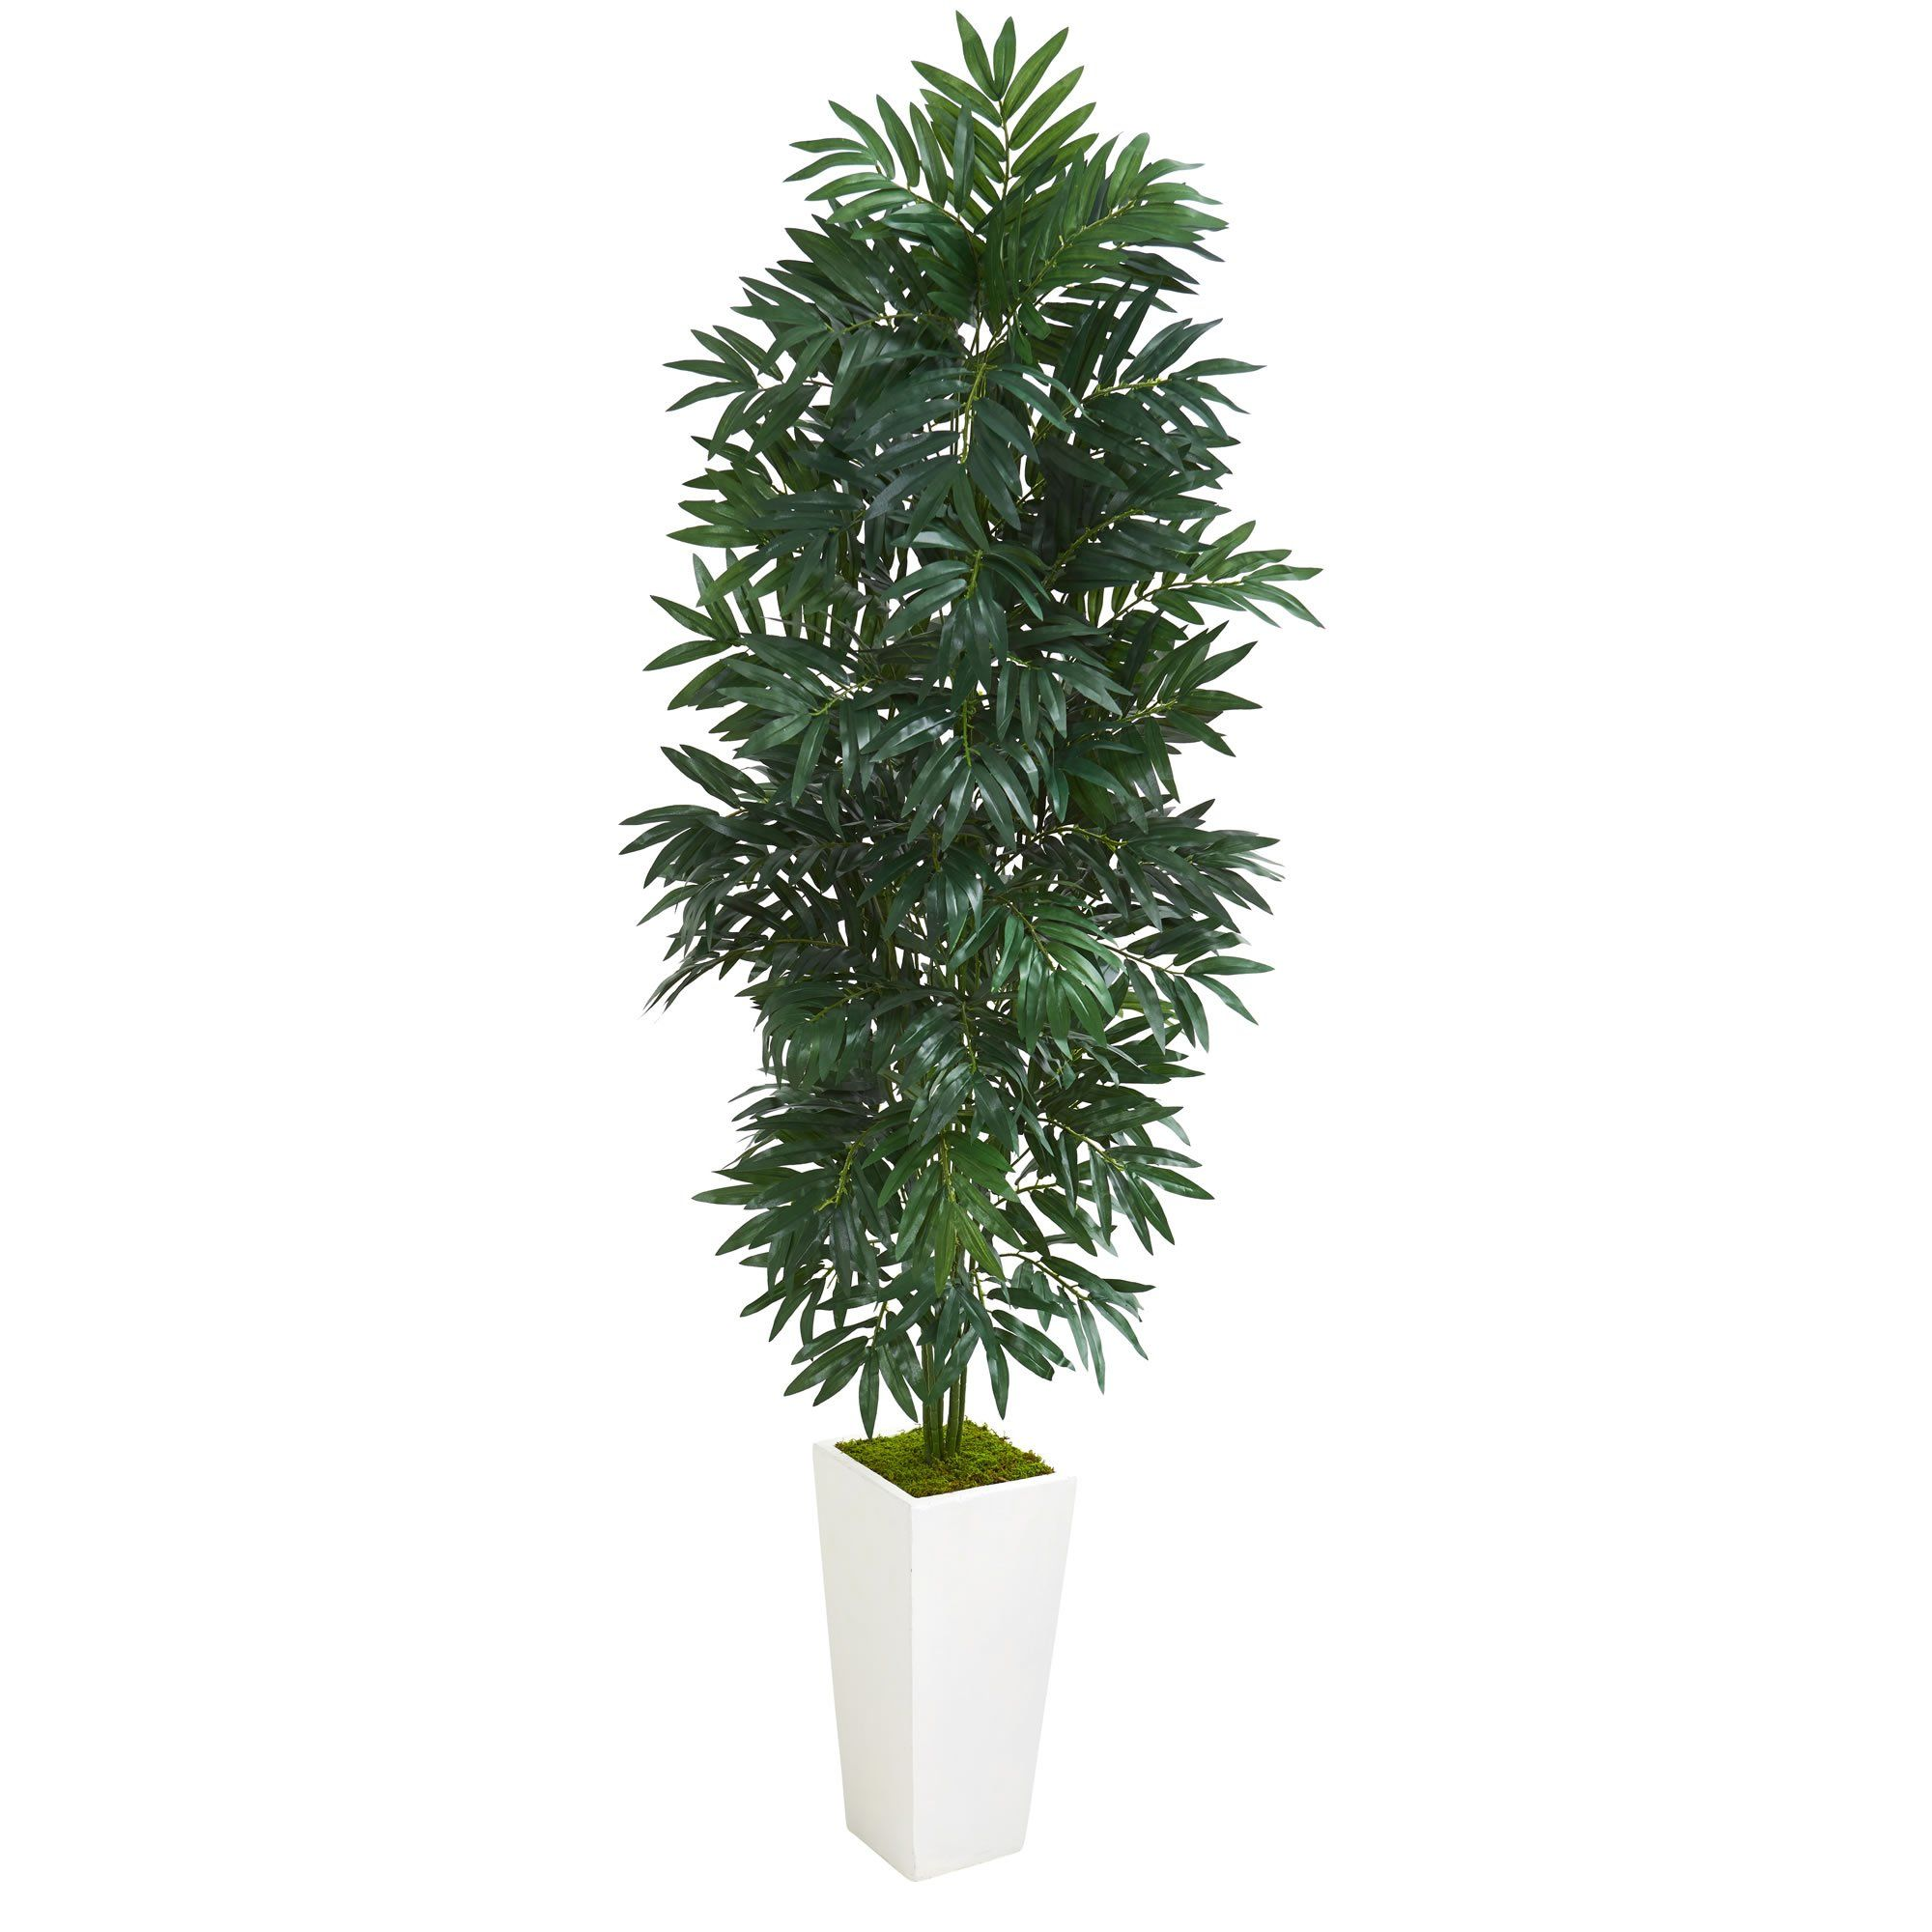 Artificial plant foot bamboo palm plant with white planter